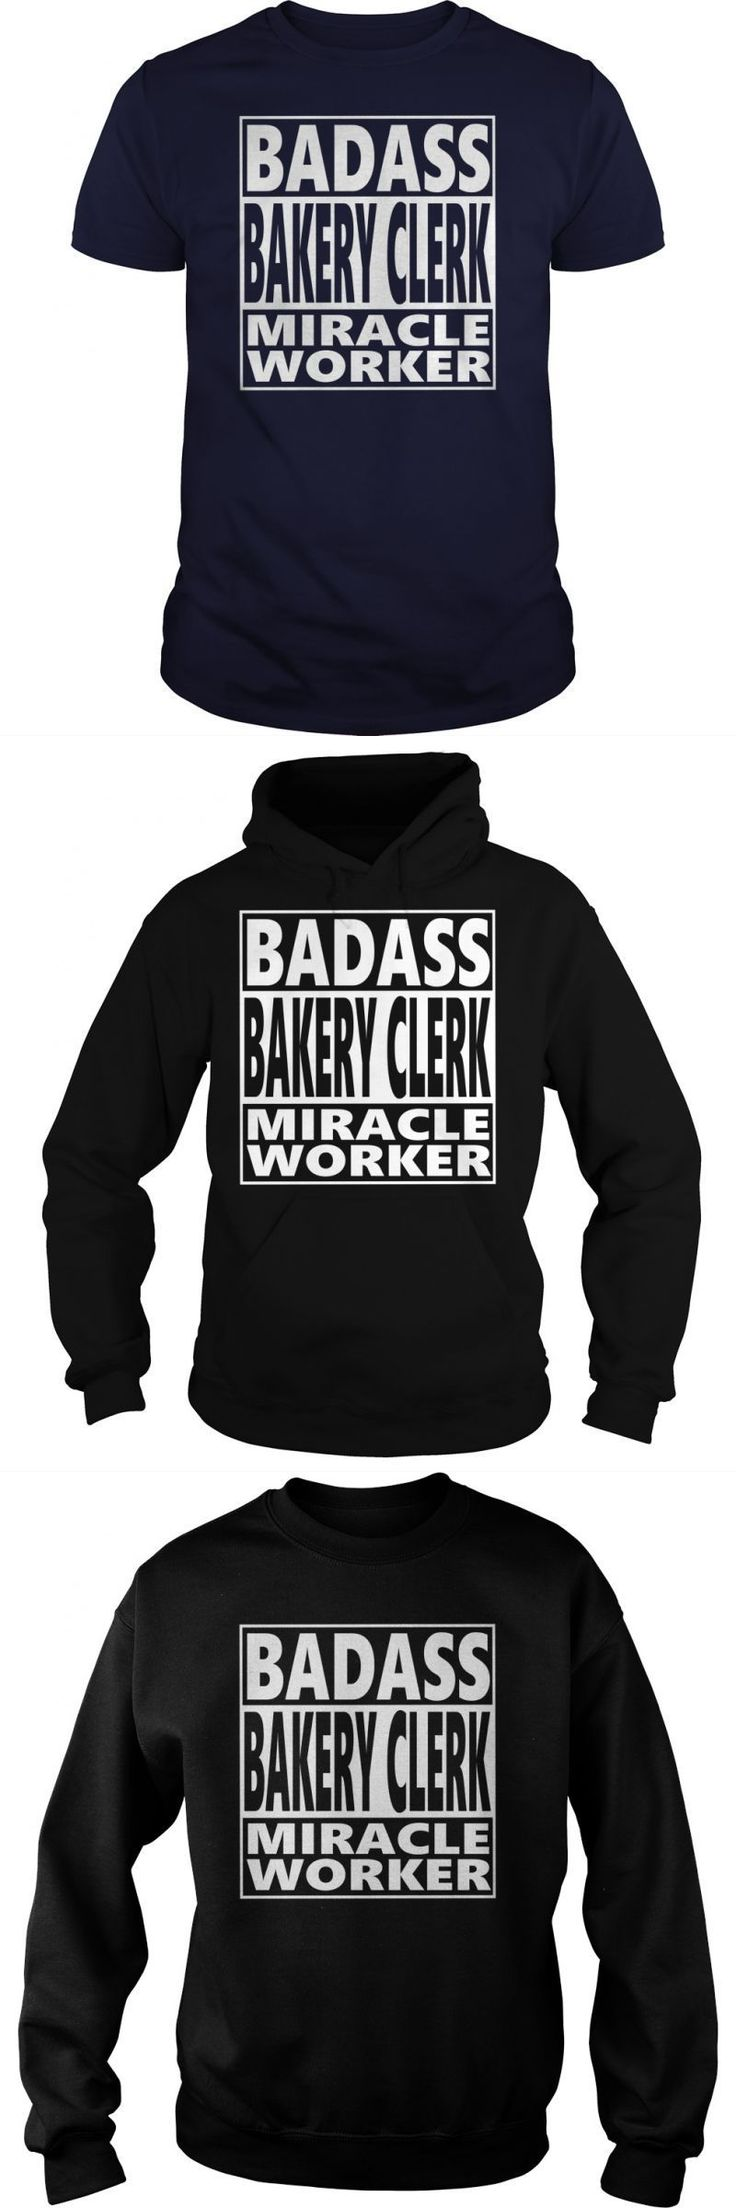 BAKERY CLERK JOBS T-SHIRT GUYS LADIES YOUTH TEE HOODIES SWEAT SHIRT V-NECK UNISEX SUNFROG BESTSELLER...FIND YOUR JOB HERE:    Https://www.***/Jobs/?45454  								  								 Guys Tee Hoodie Sweat Shirt Ladies Tee Youth Tee Guys V-Neck Ladies V-Neck Unisex Tank Top Unisex Longsleeve Tee X Band T Shirt Central Bank T Shirt Chase Bank T Shirts North Bank T Shirt